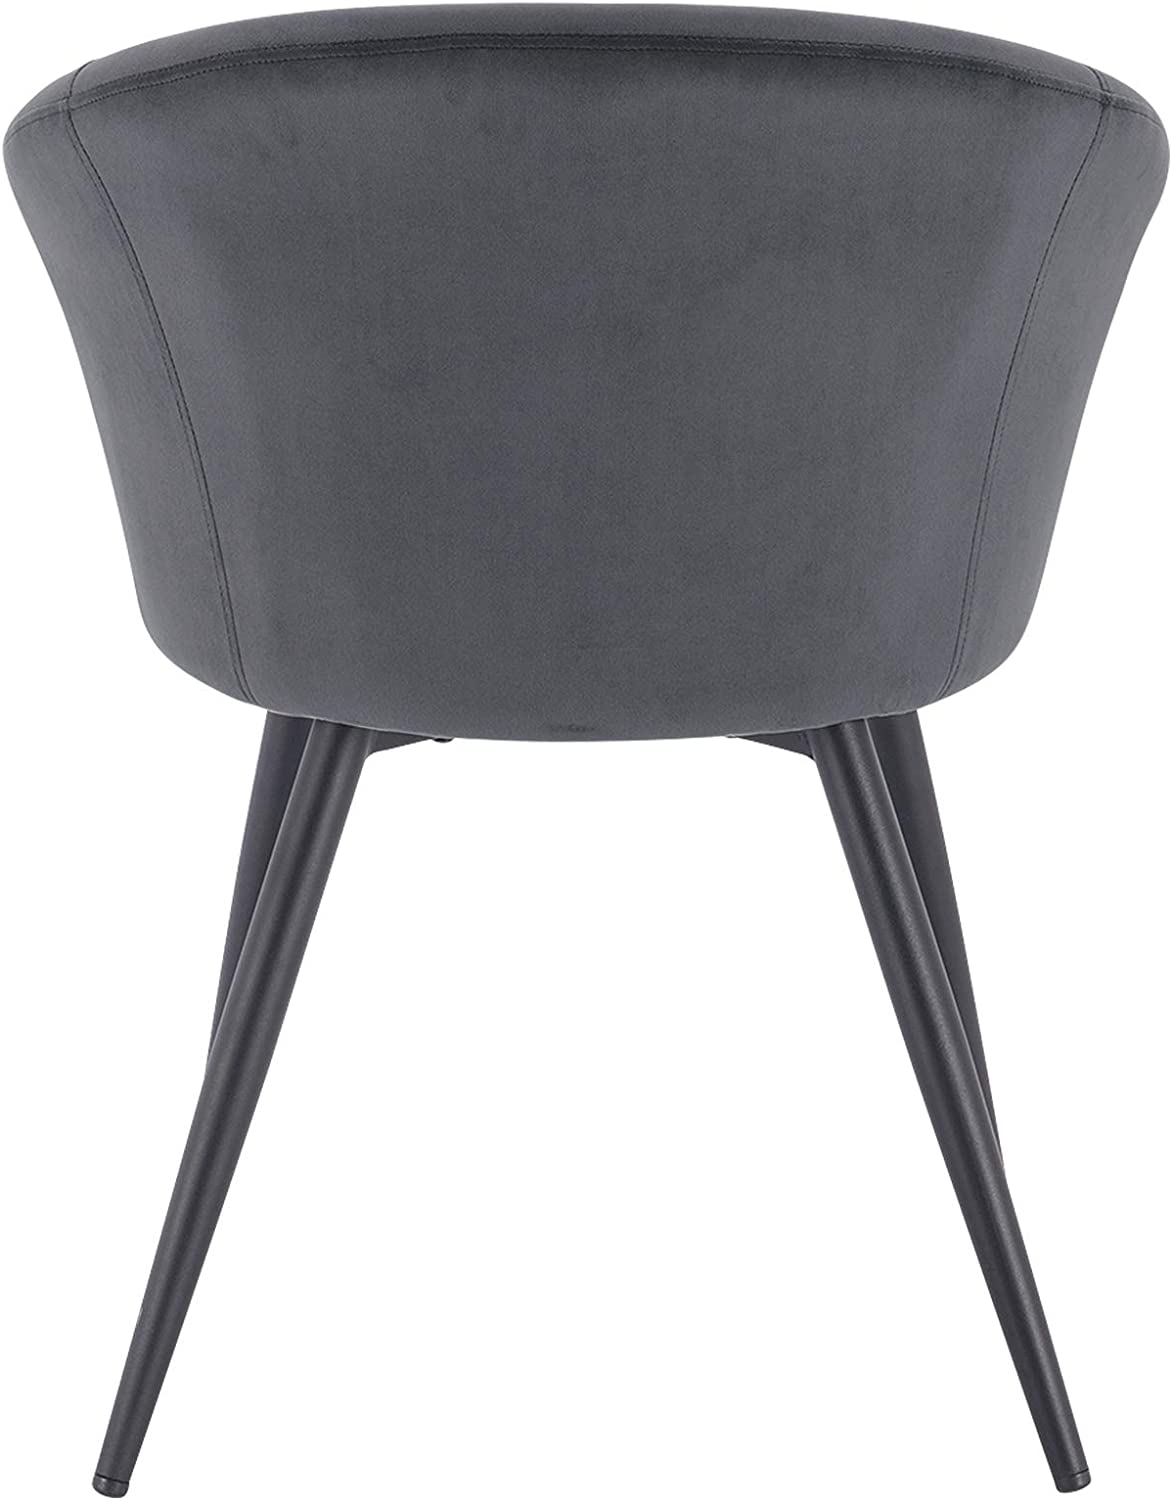 eSituro 1x Dining Chair Kitchen Counter Corner Chair Dark Grey with Solid Metal Legs and Backrest & for Office Lounge Dining Kitchen SDC0234-1 Dark Grey